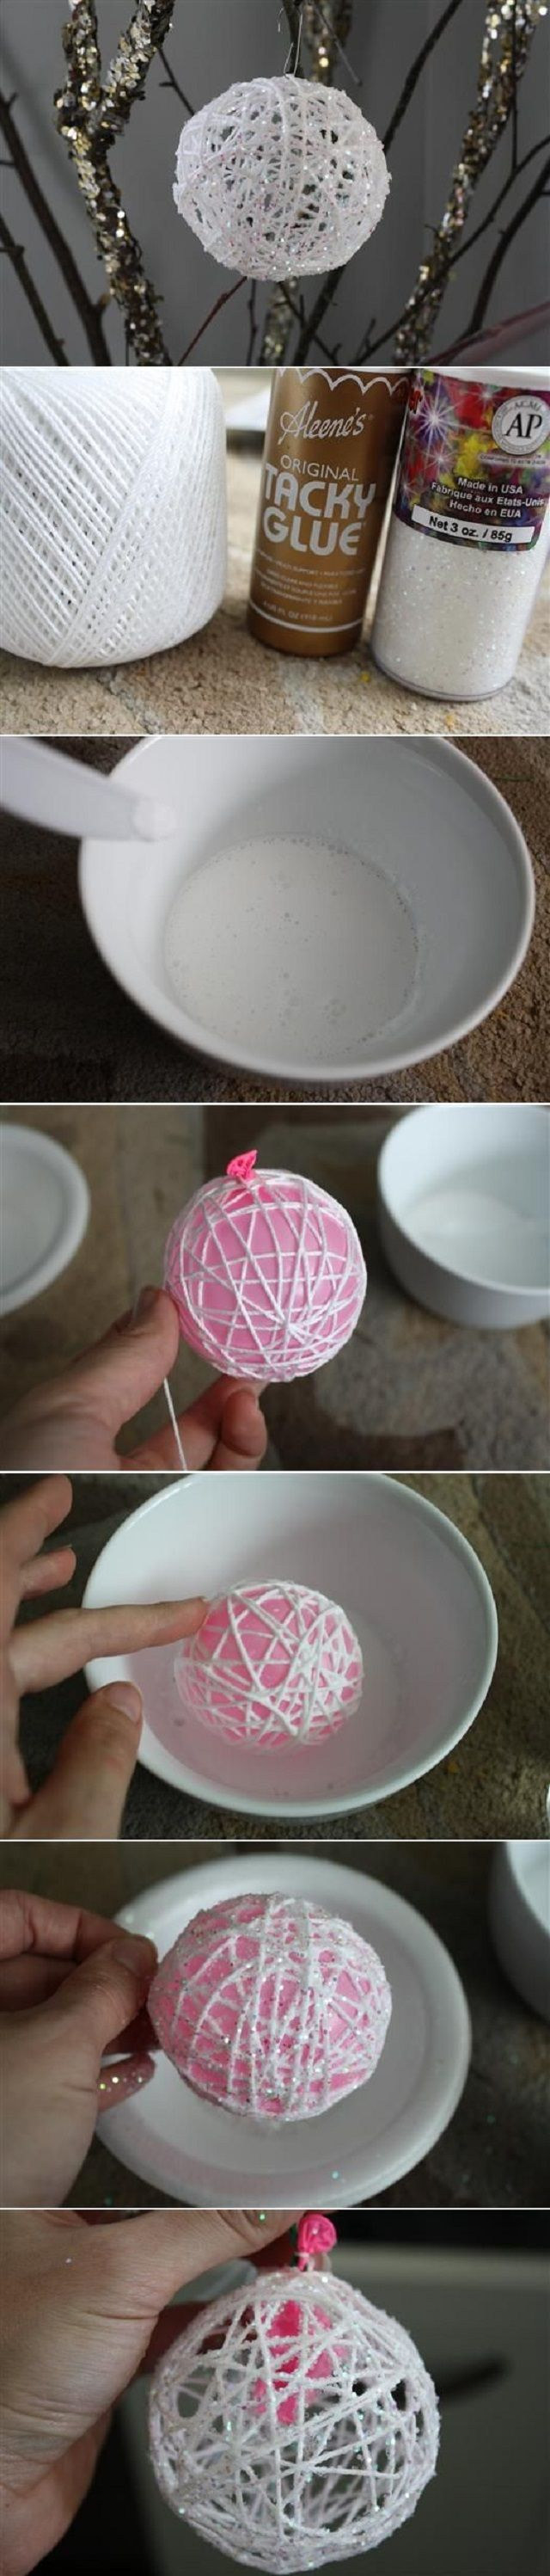 Glitter twine balls-Christmas tree ornaments, maybe?